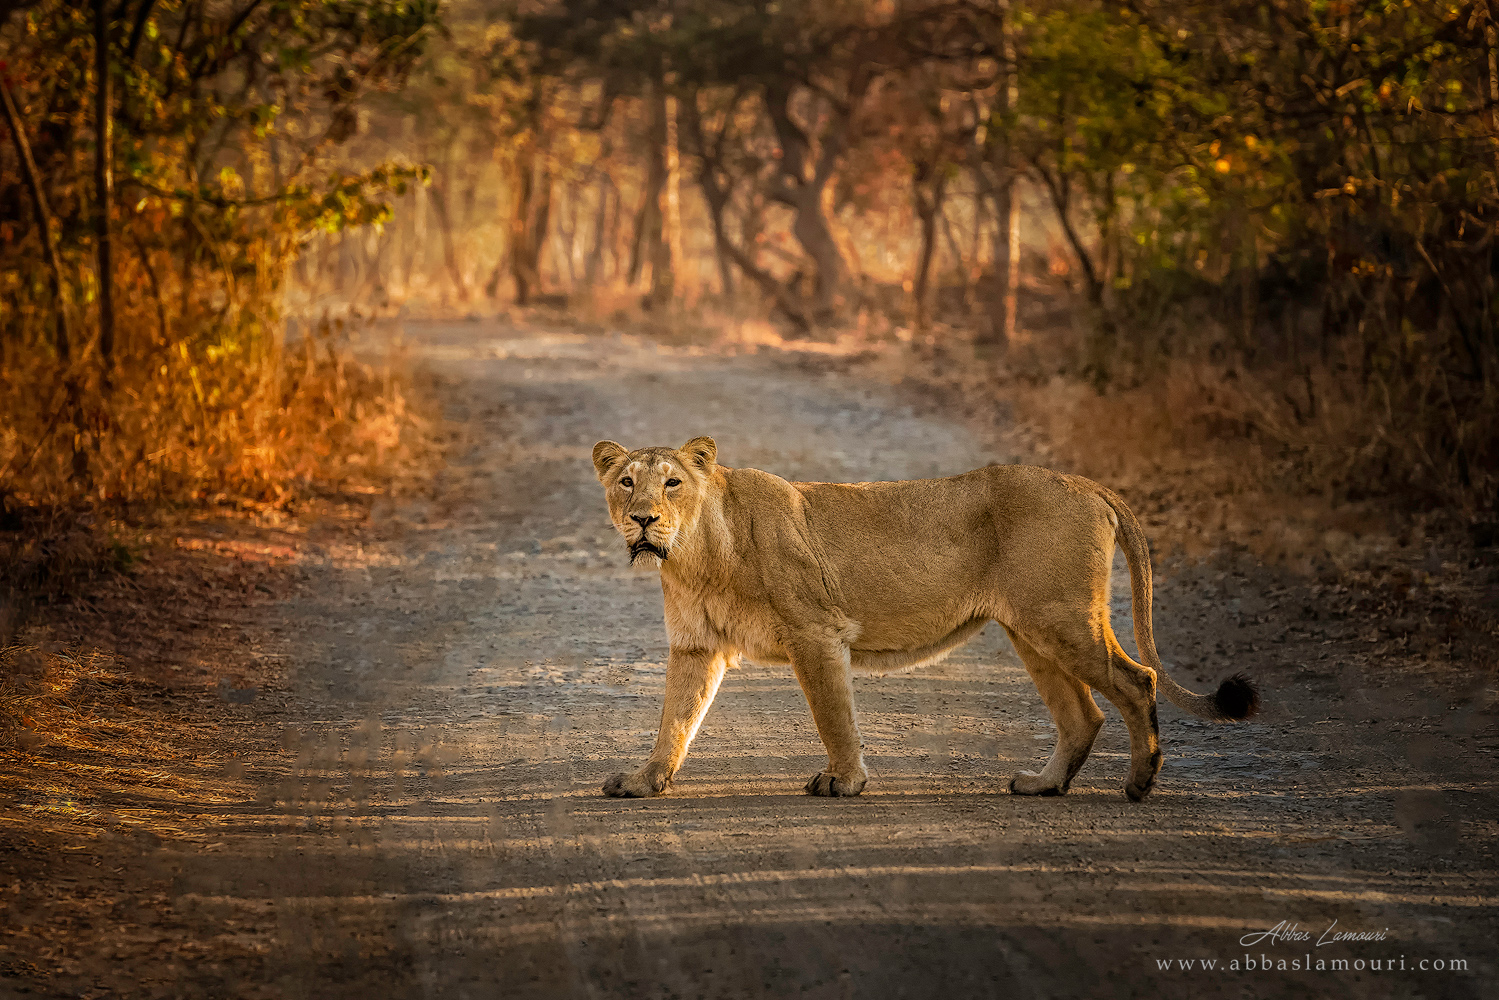 At present, Gir forests of Gujarat, India is the only natural place where lions can be found outside africa.